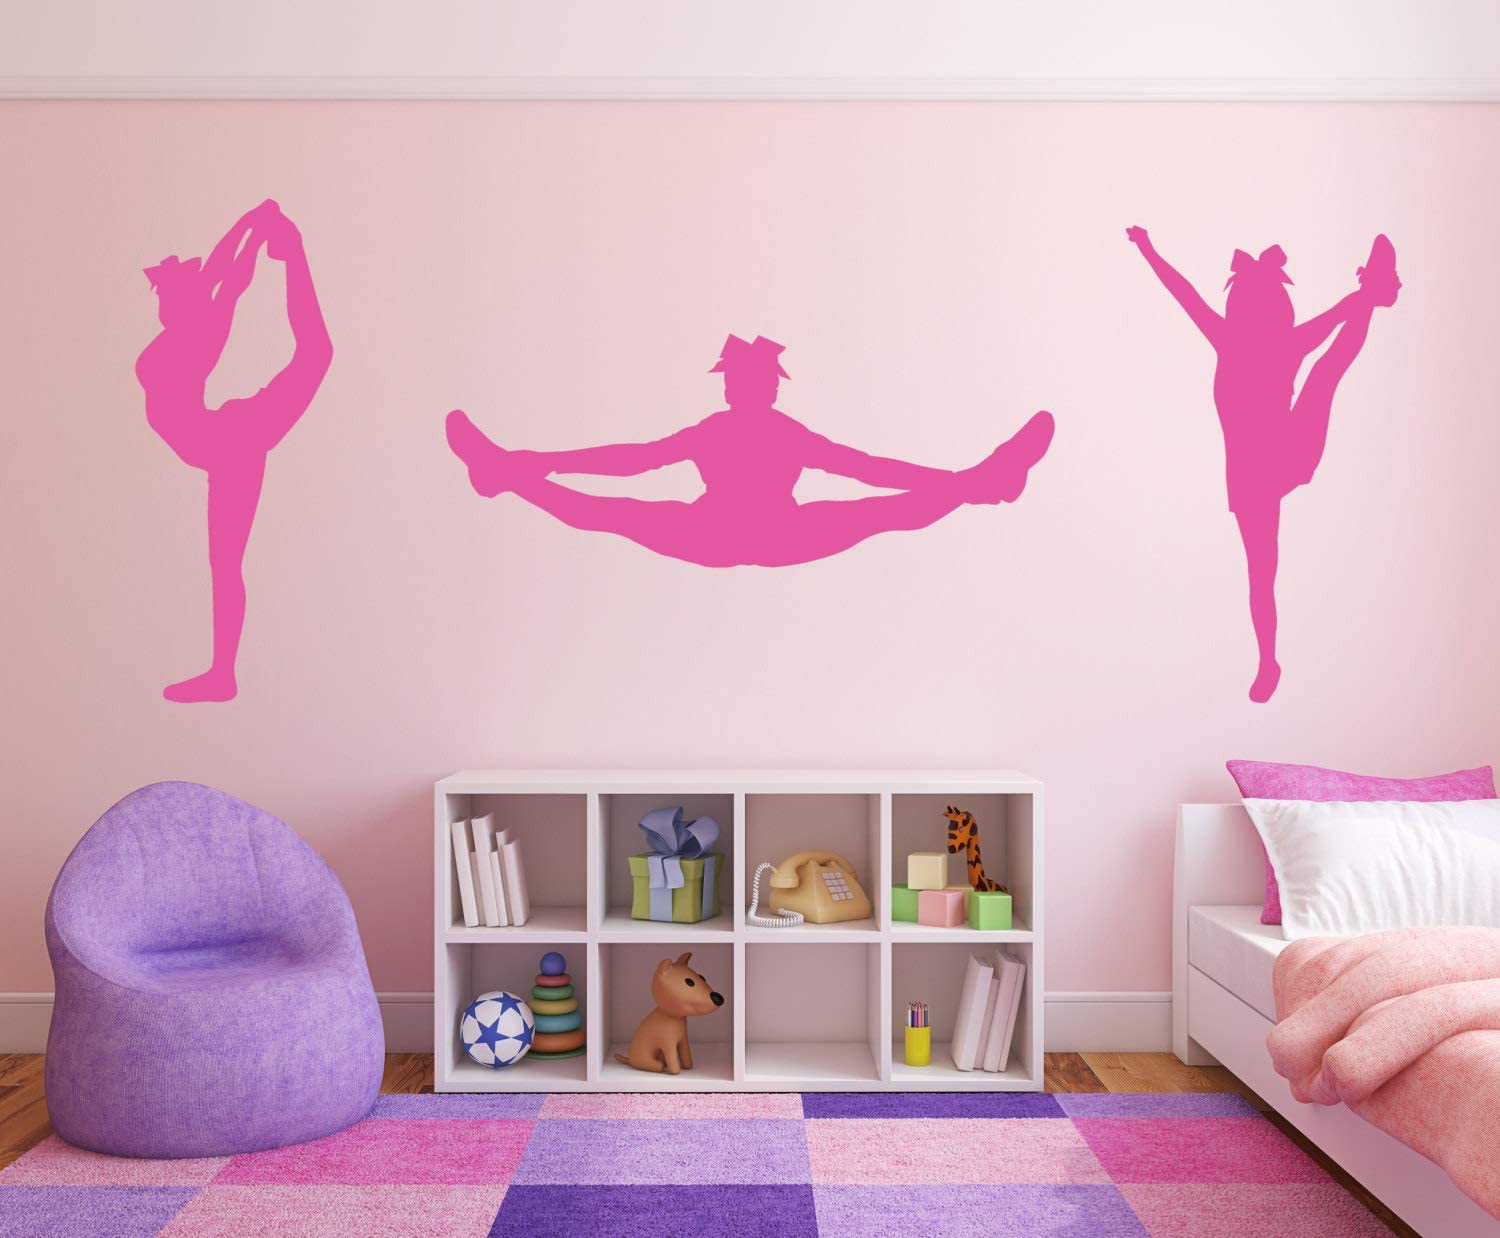 A Design World Vinyl decacls Cheerleader Wall Decal Room Wall Decor Vinyl Decal Sticker - Toe Touch Scorpion Heal Stretch Cheer Package